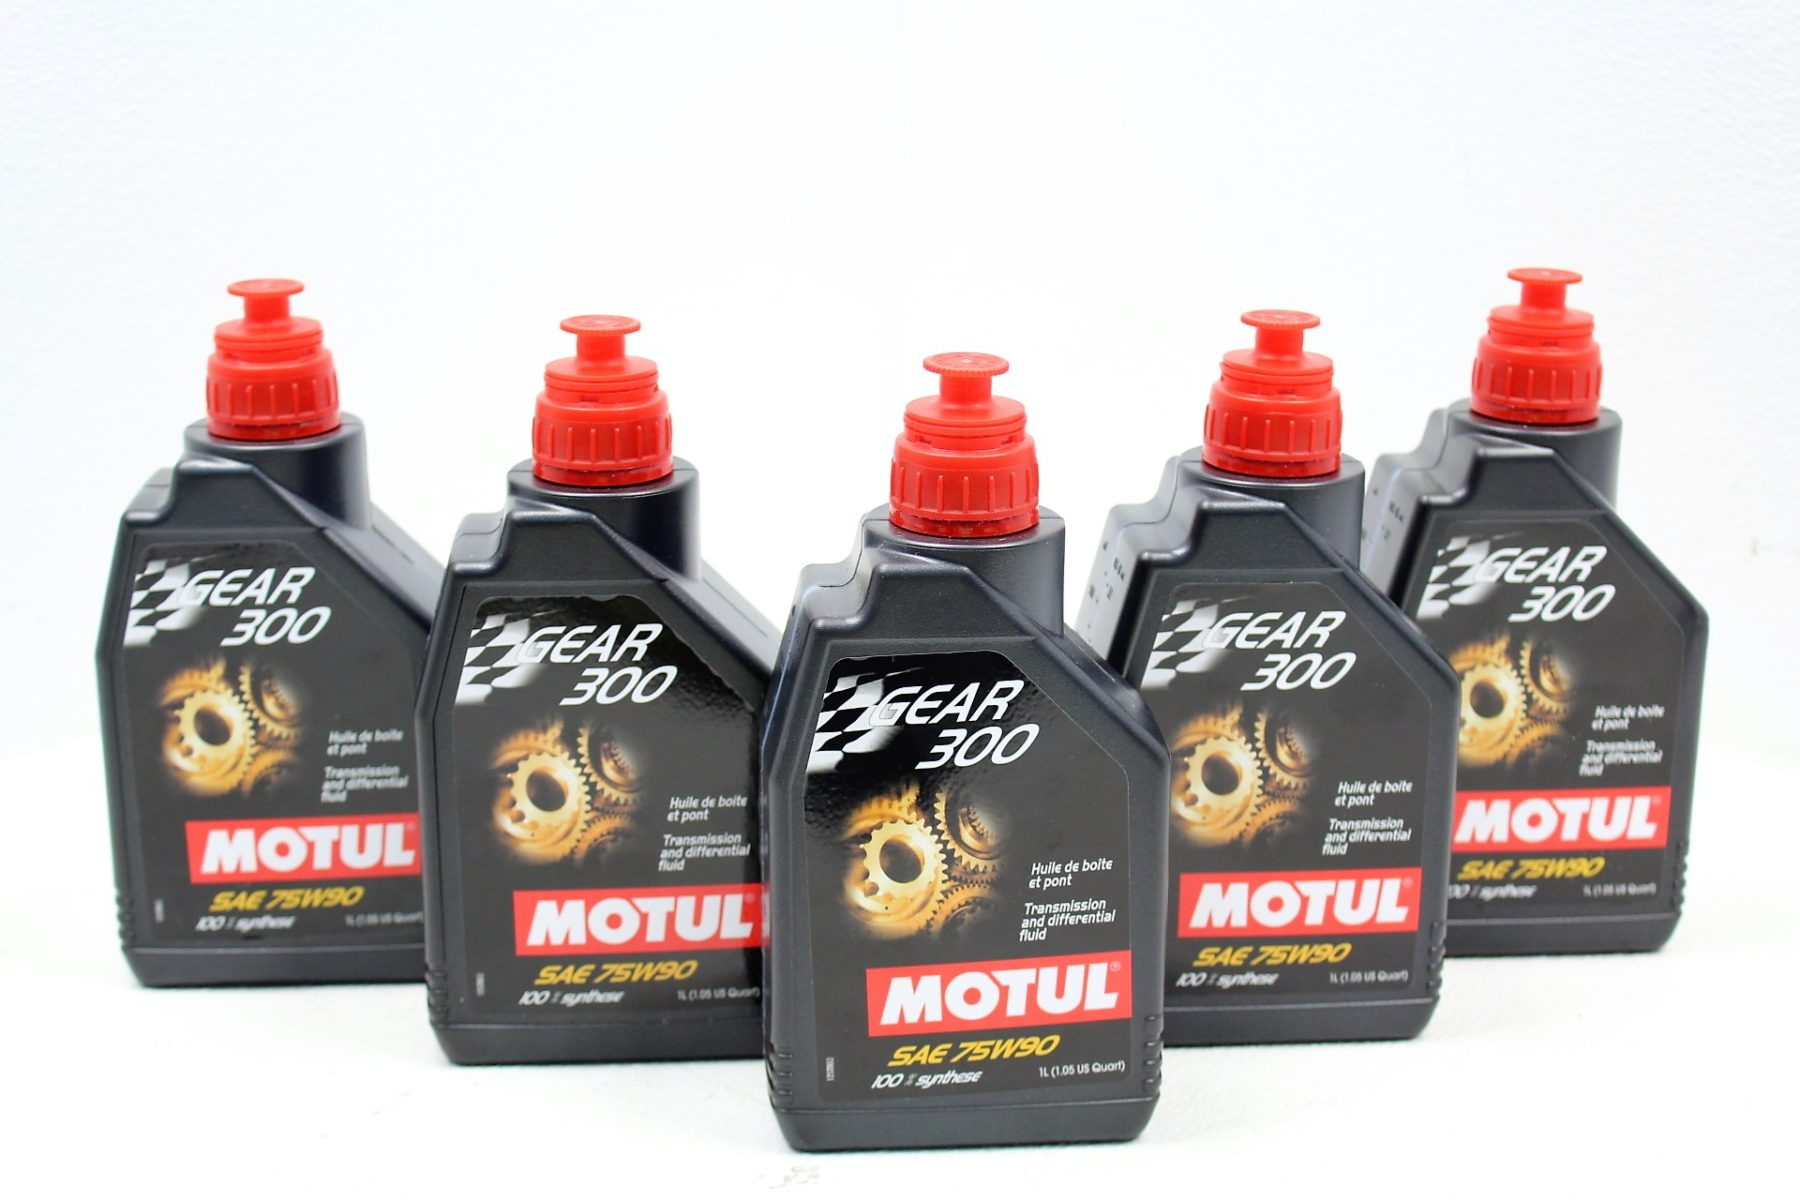 2007-2019 SUBARU WRX STI MOTUL GEAR 300 6MT TRANSMISSION & REAR  DIFFERENTIAL GEAR OIL KIT